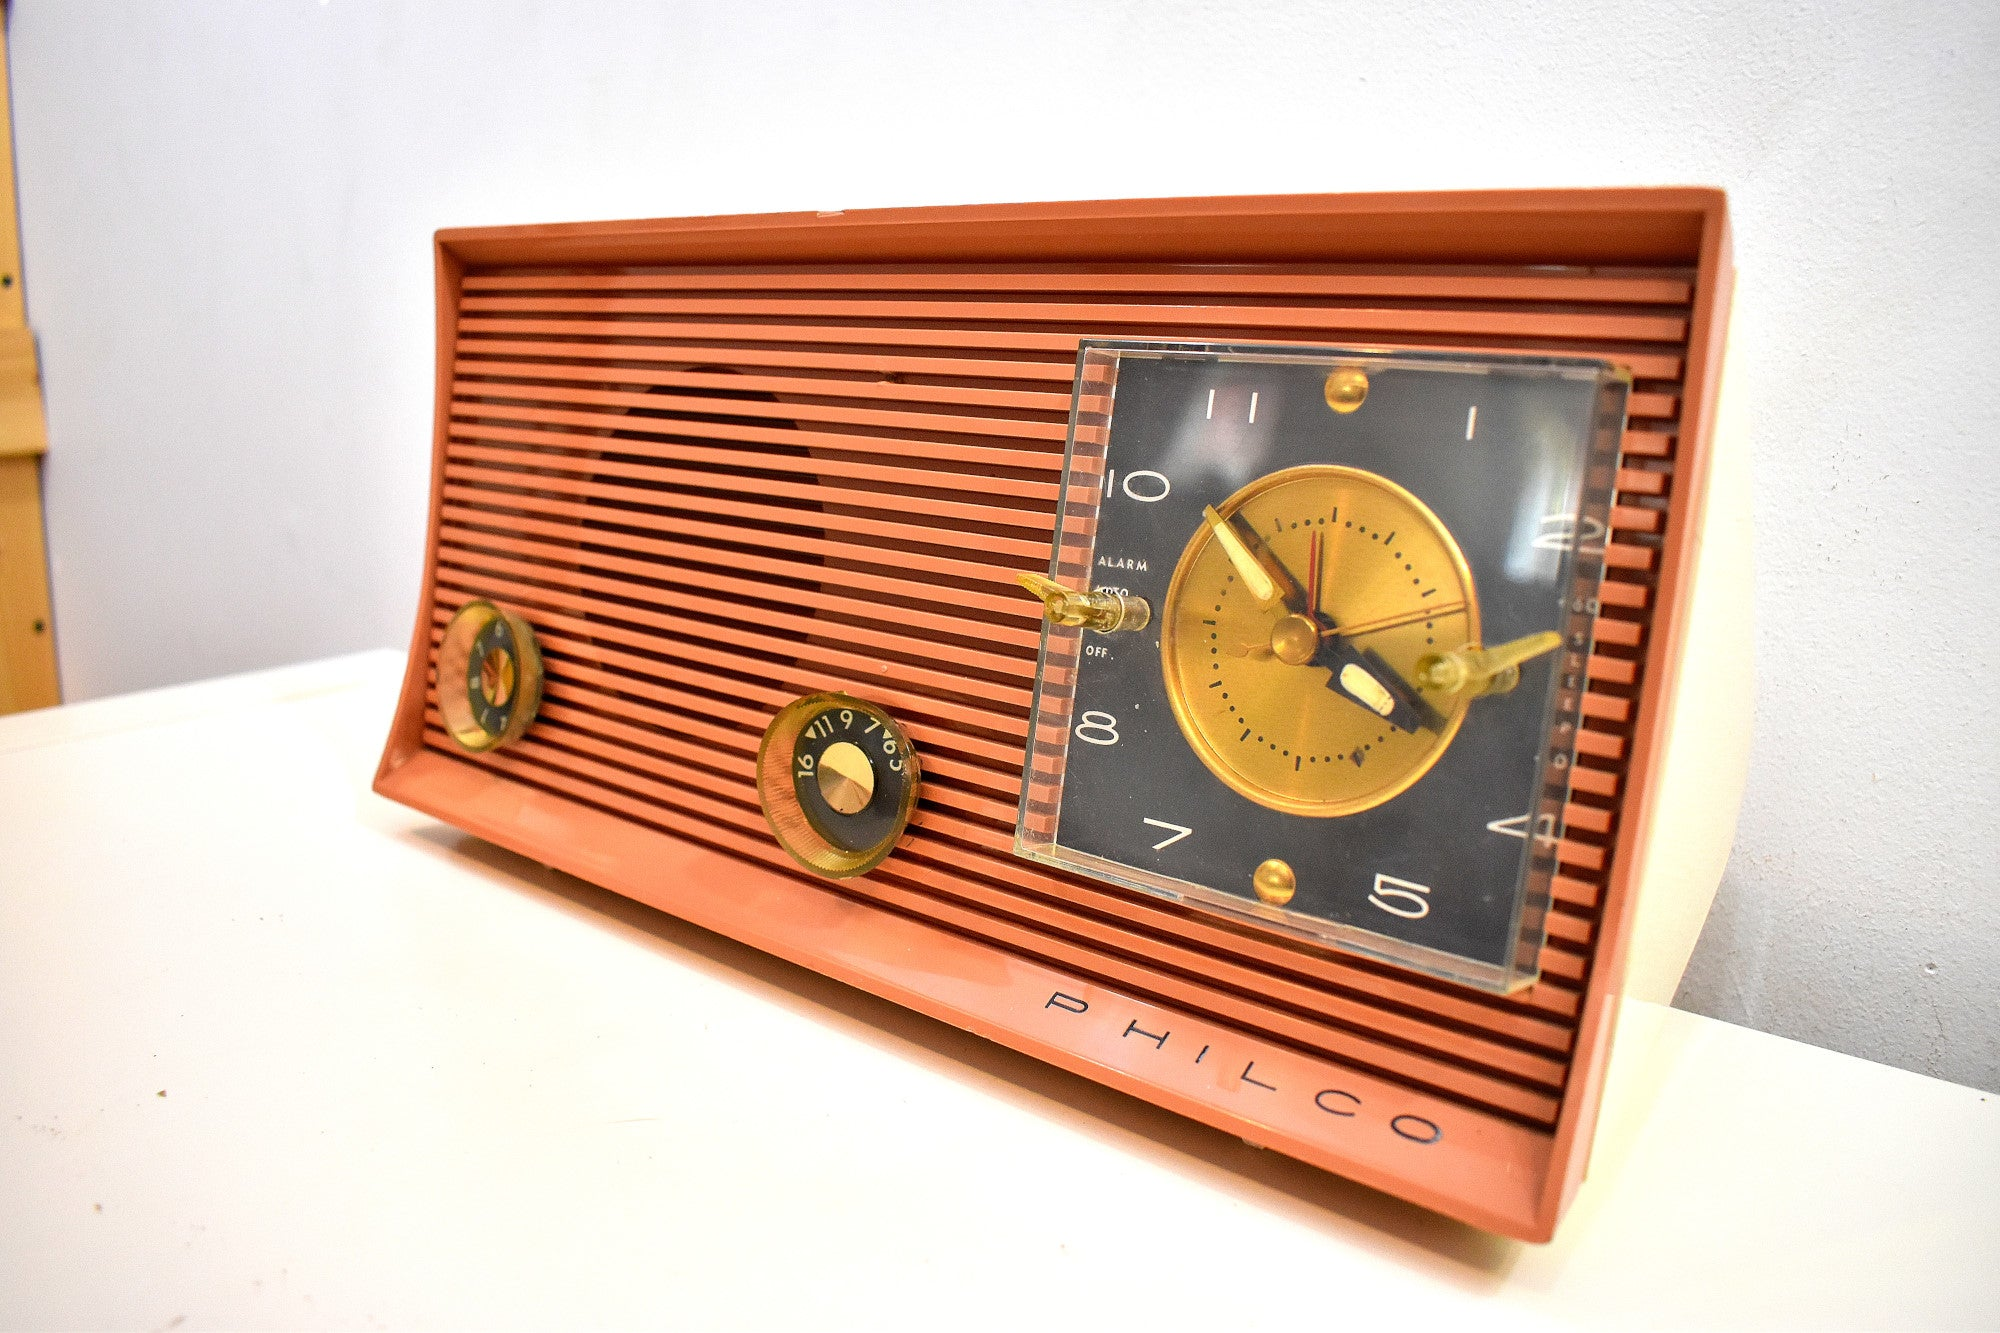 Bluetooth Ready To Go - Pink Clay Tan and White 1959 Philco Model J773-124 AM Vacuum Tube Radio Sounds and Looks Great!